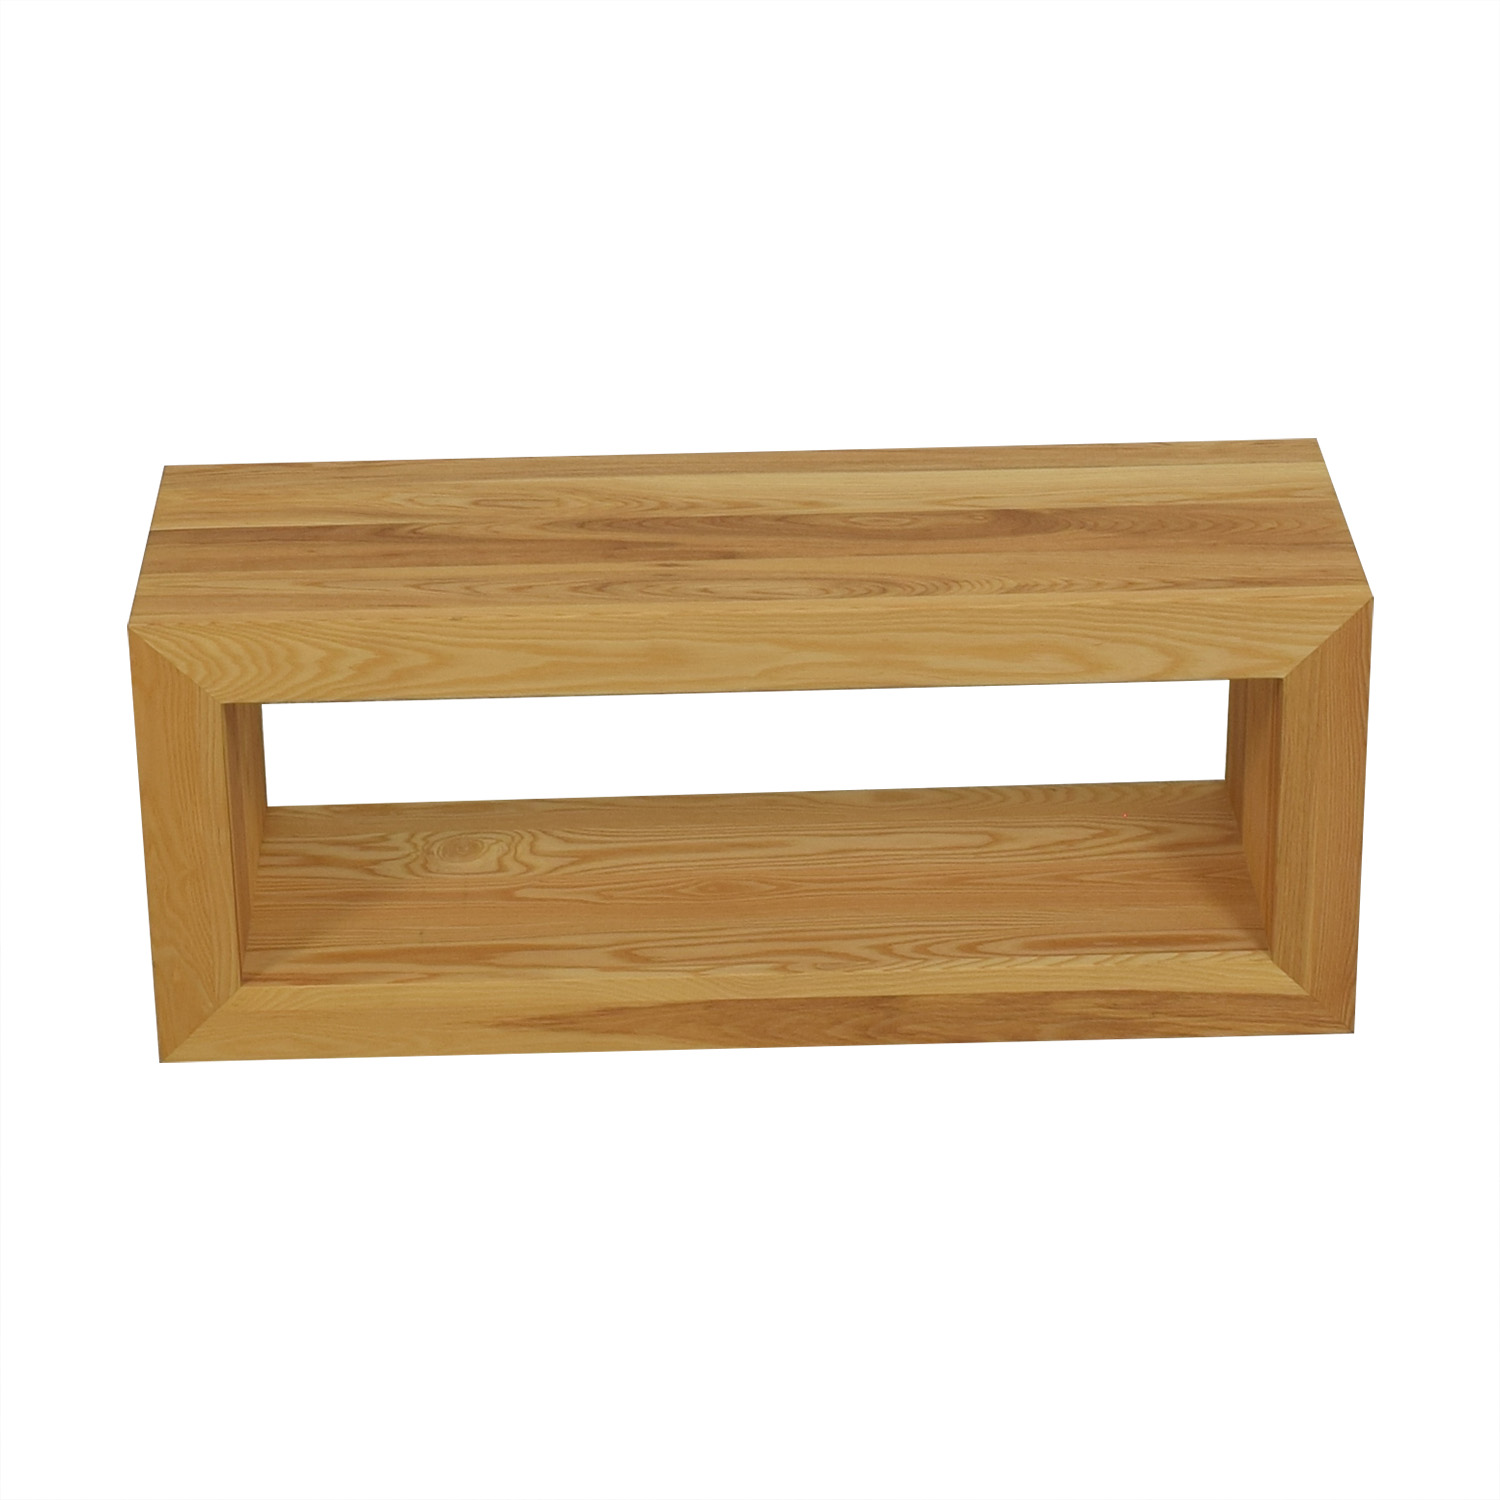 Hugo & Hoby Hugo & Hoby Humphrey Entertainment Console dimensions